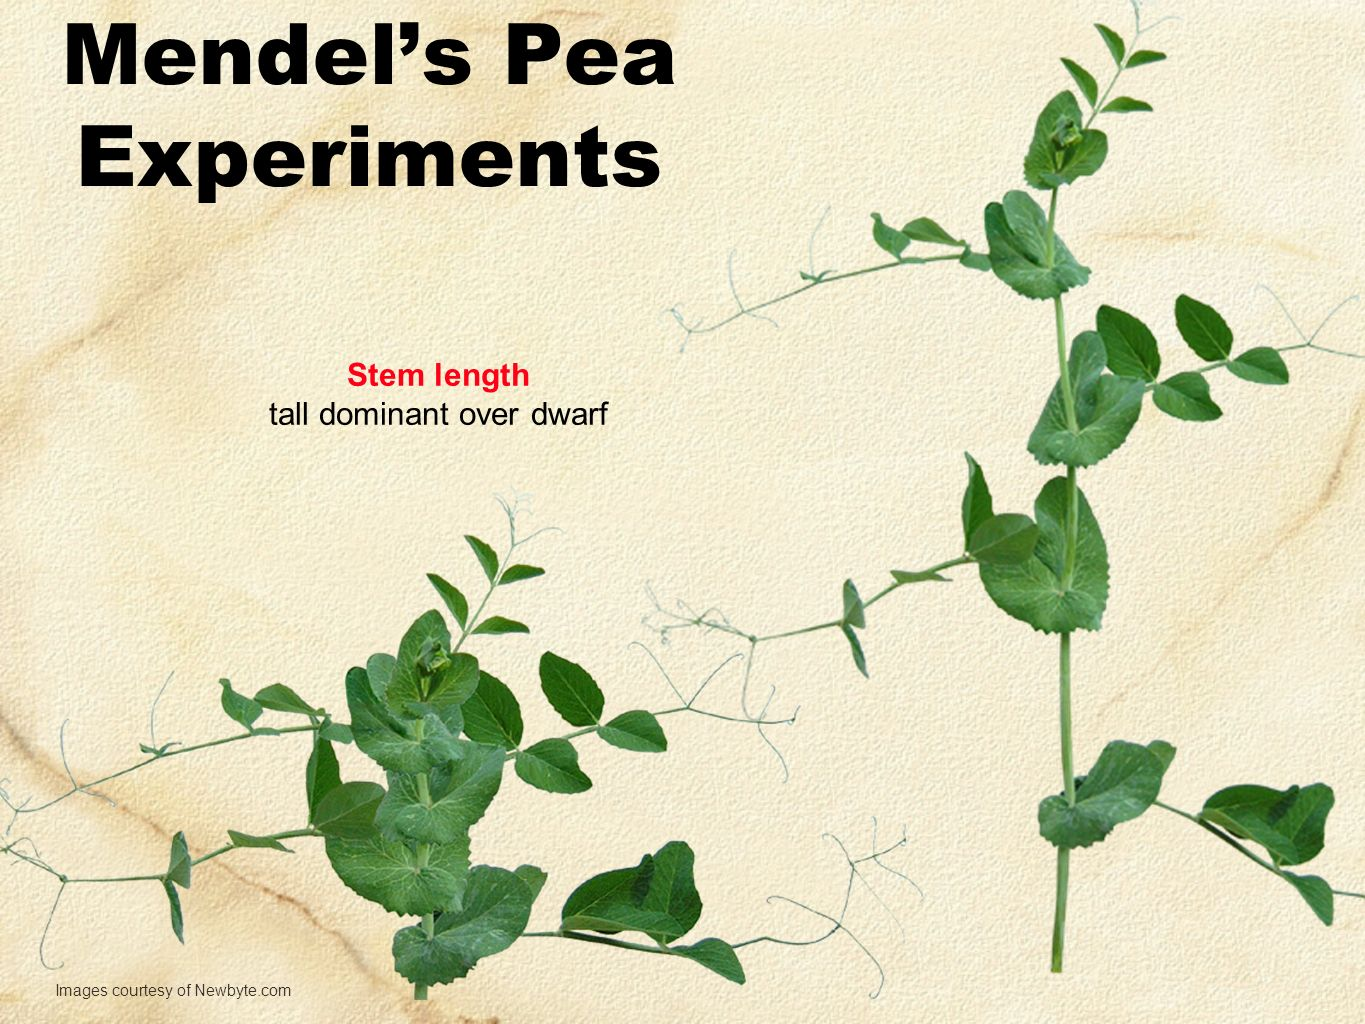 Mendel's Pea Experiments Stem length tall dominant over dwarf Images courtesy of Newbyte.com